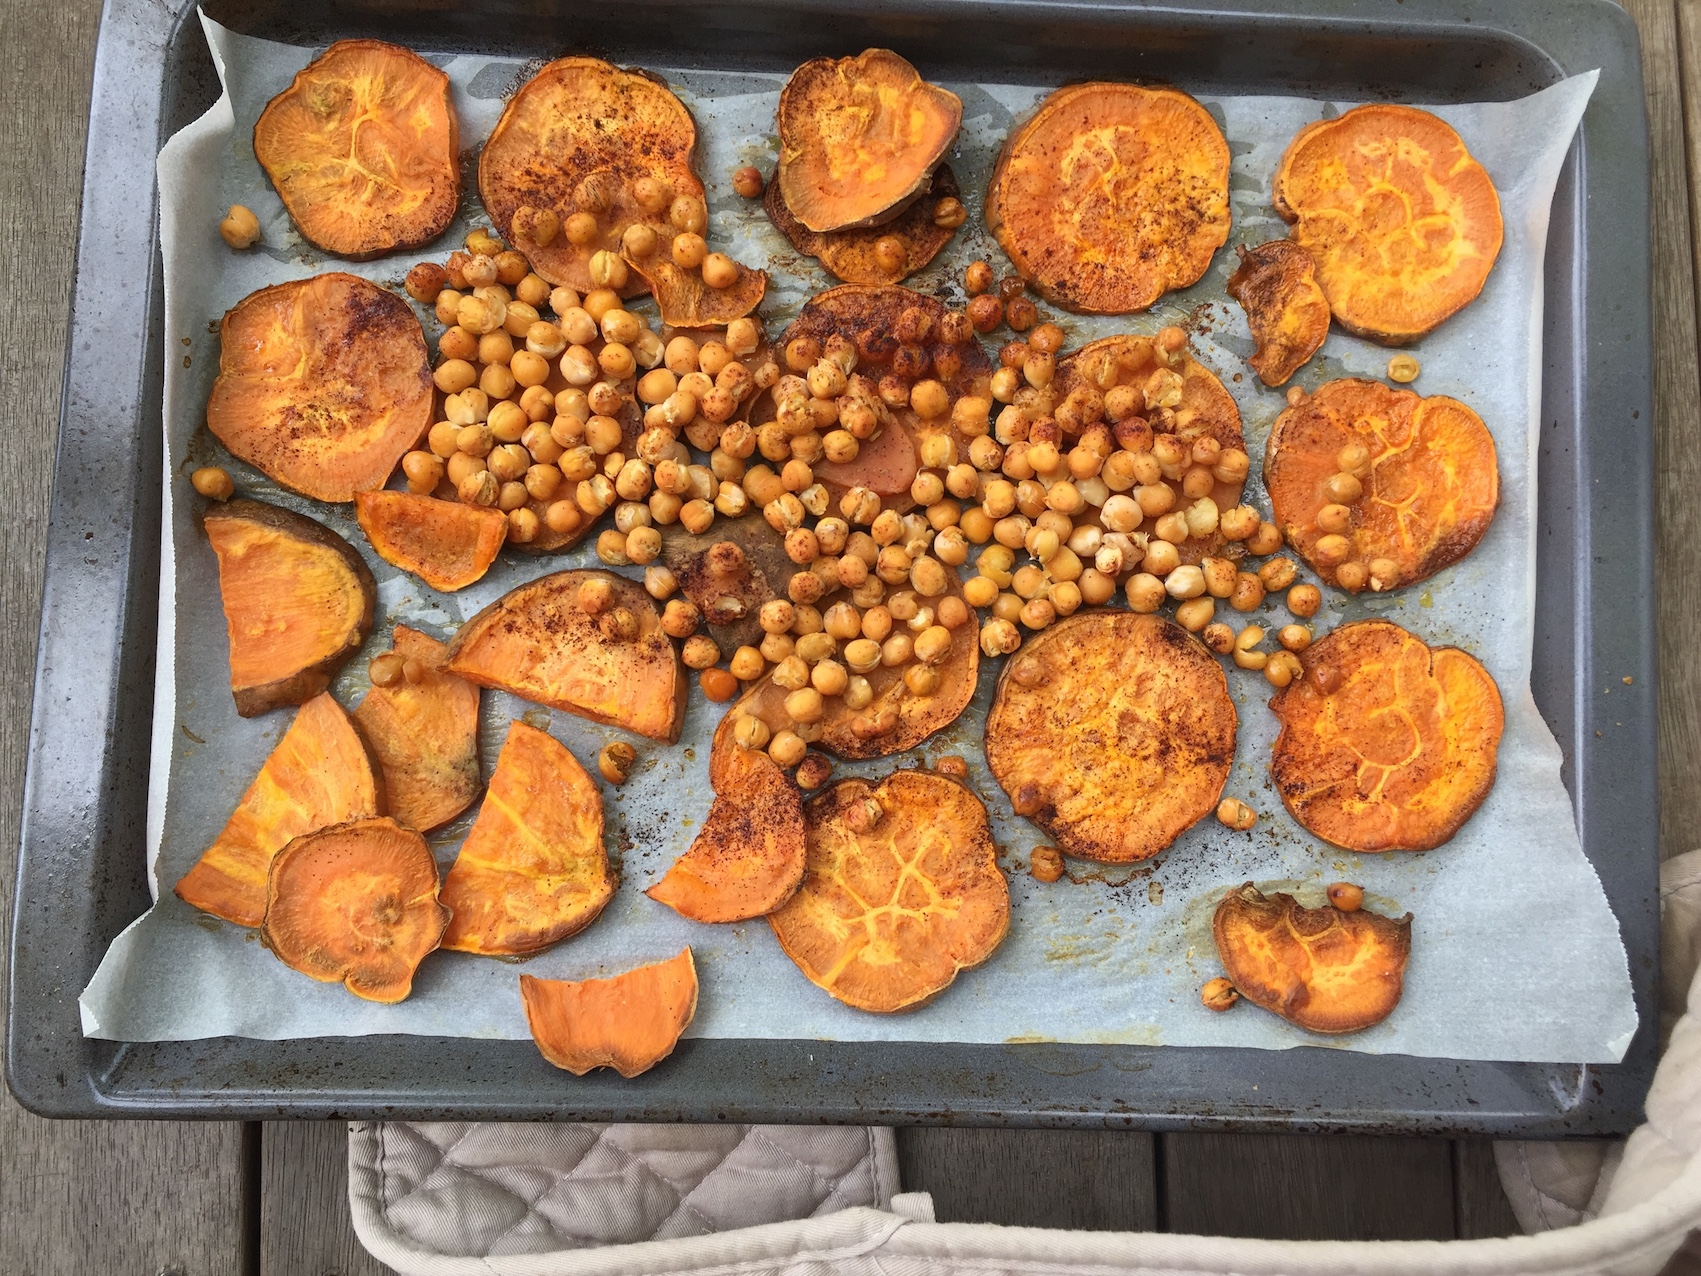 Adding a tin of drained chickpeas when you are roasting your sweet potato makes a crunchy salad topper that's high in fibre and protein.